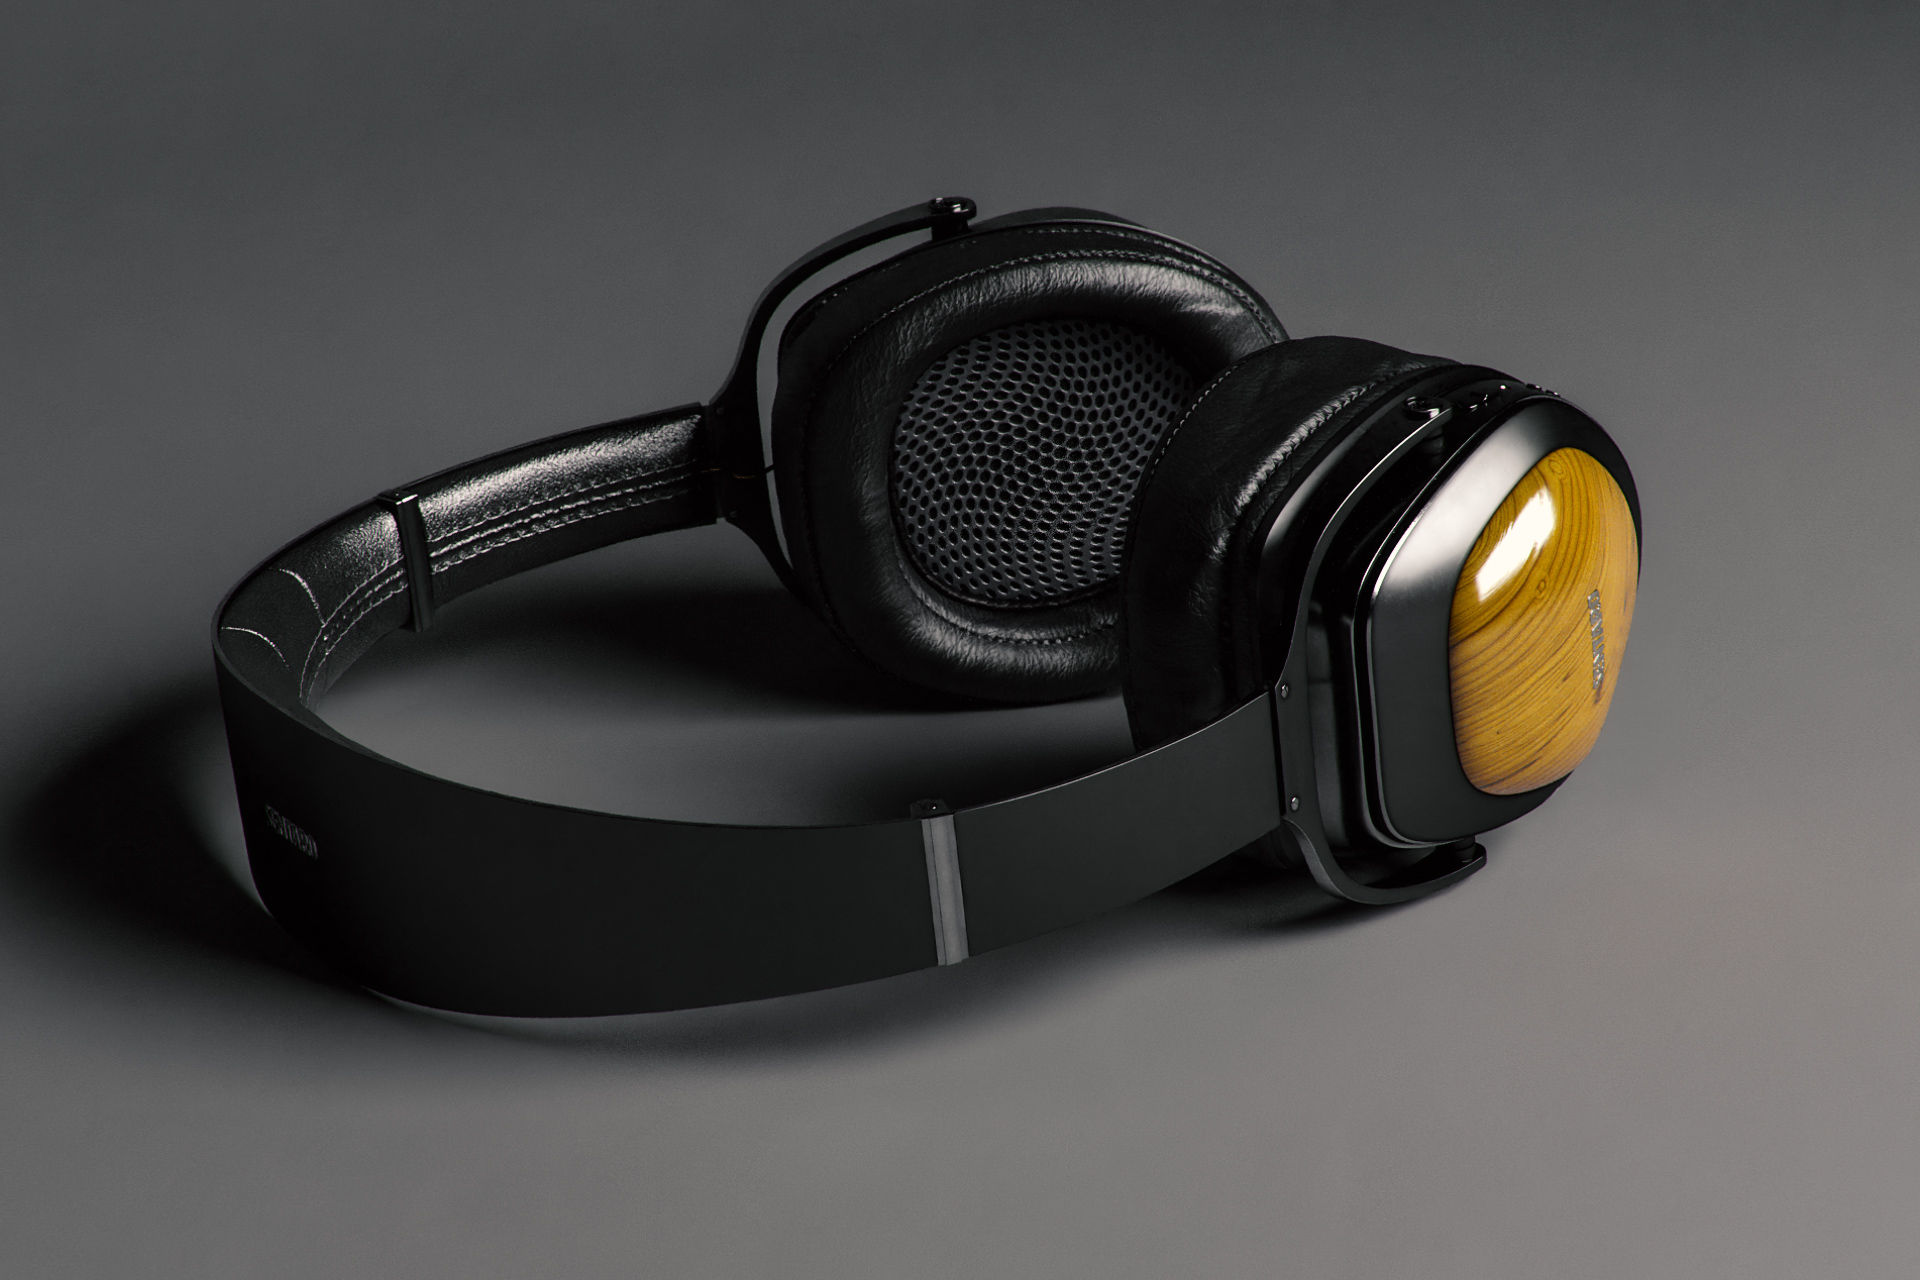 Example of a key light illuminating a 3d headphone model